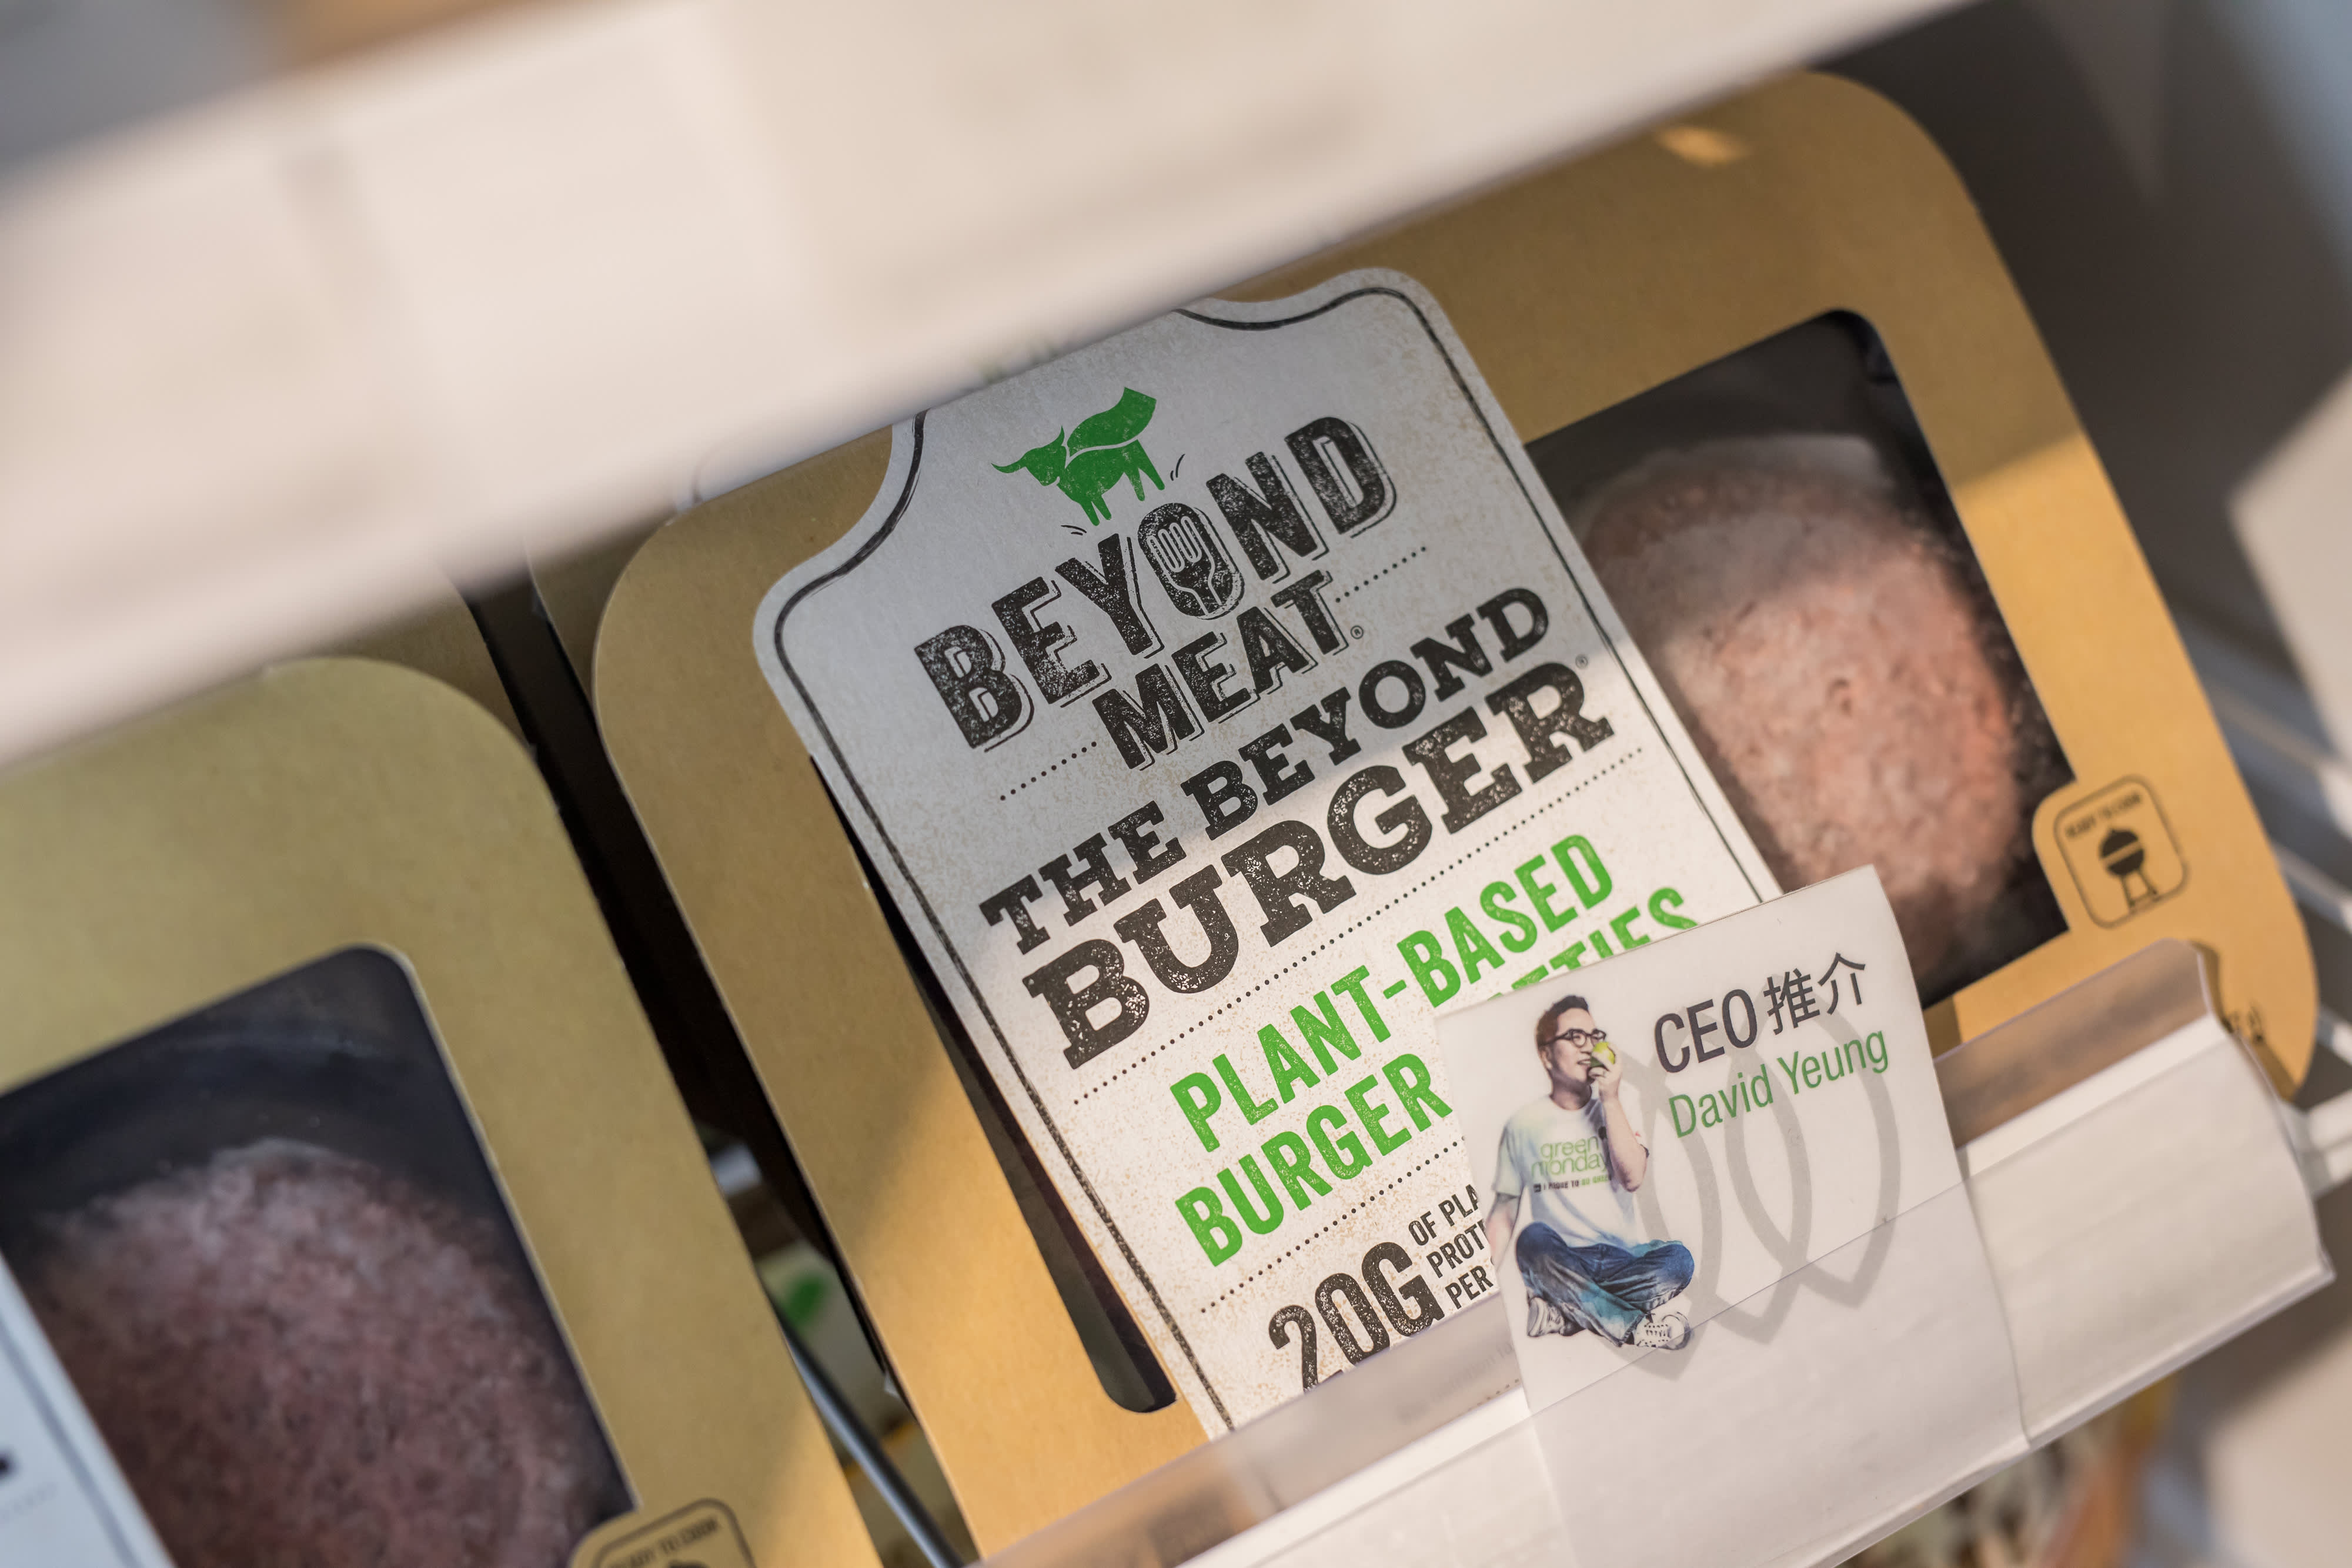 Beyond Meat loss widens amid higher costs, shares fall as pandemic clouds outlook - CNBC